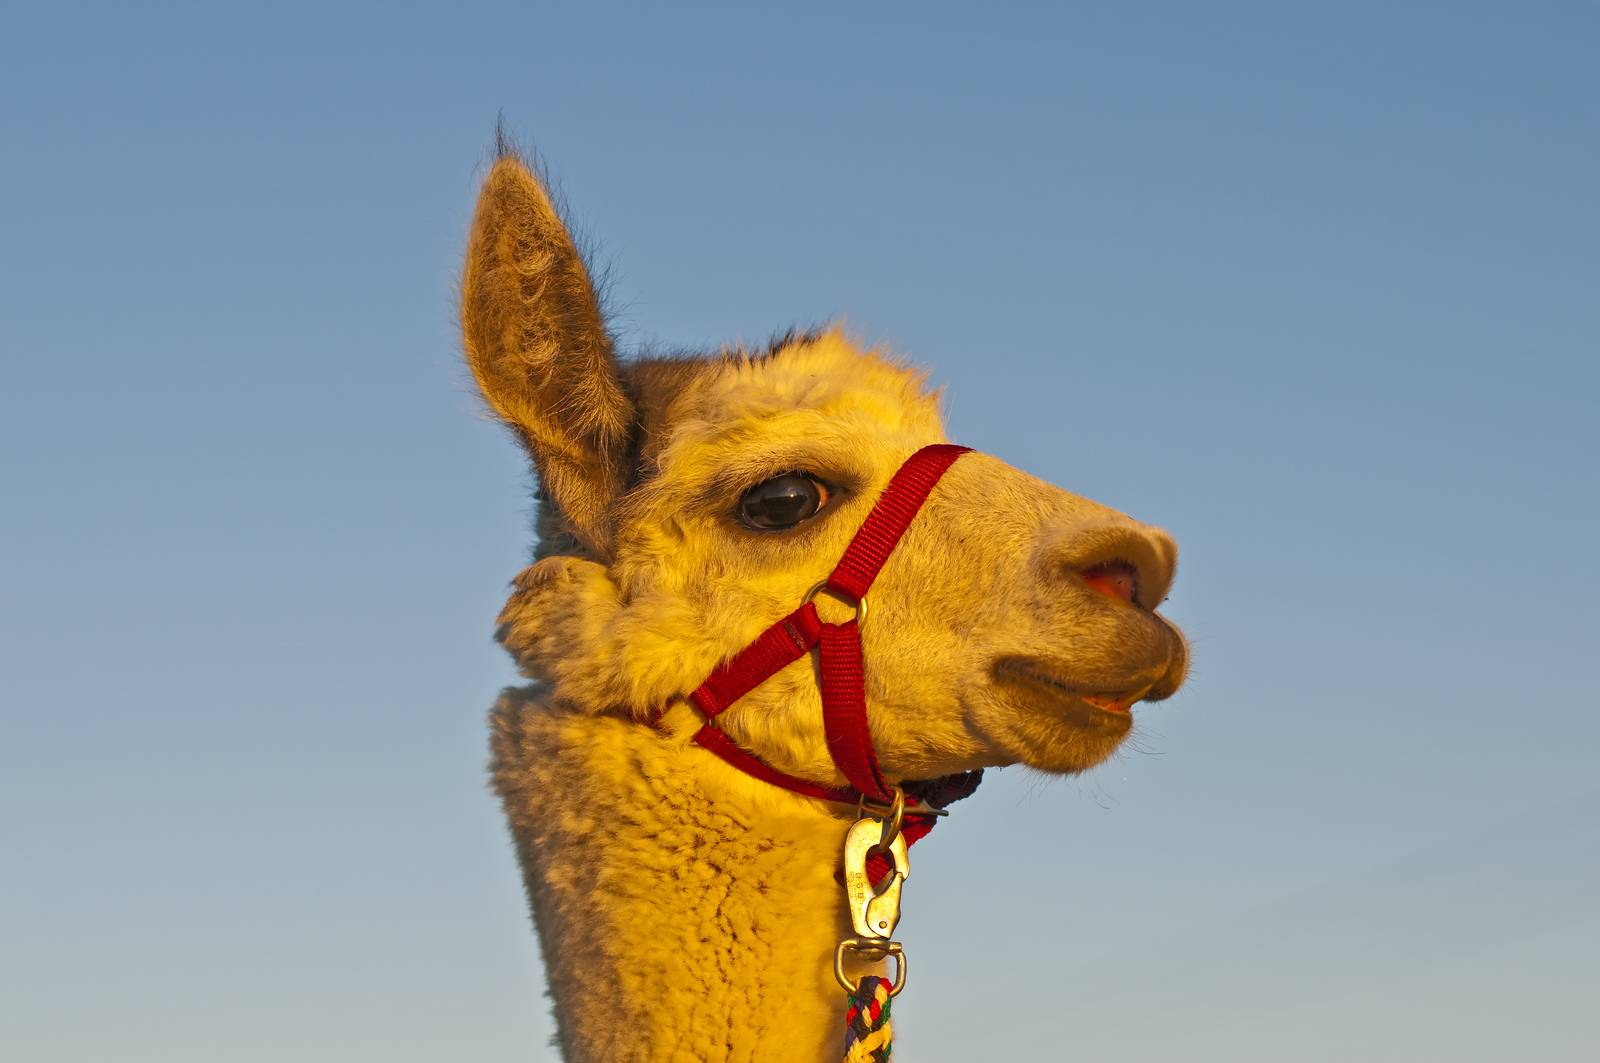 AAT, assisted animal therapy, adorable, alpaca, America, Andes - D34298248